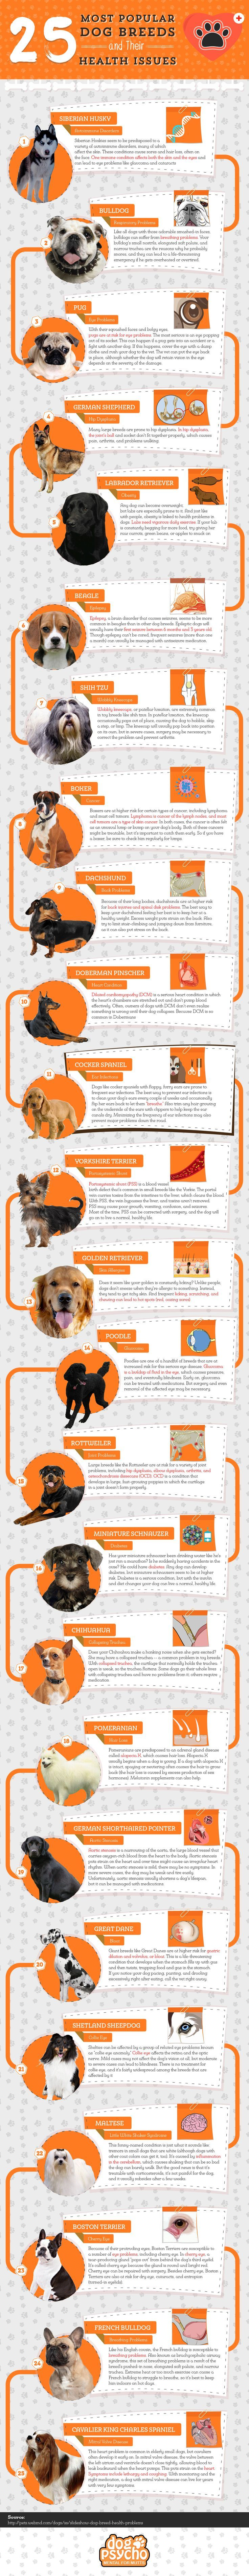 Most Popular Dog Breeds and Their Natural Health Problems #Infographic #Animals #Dogs #Health